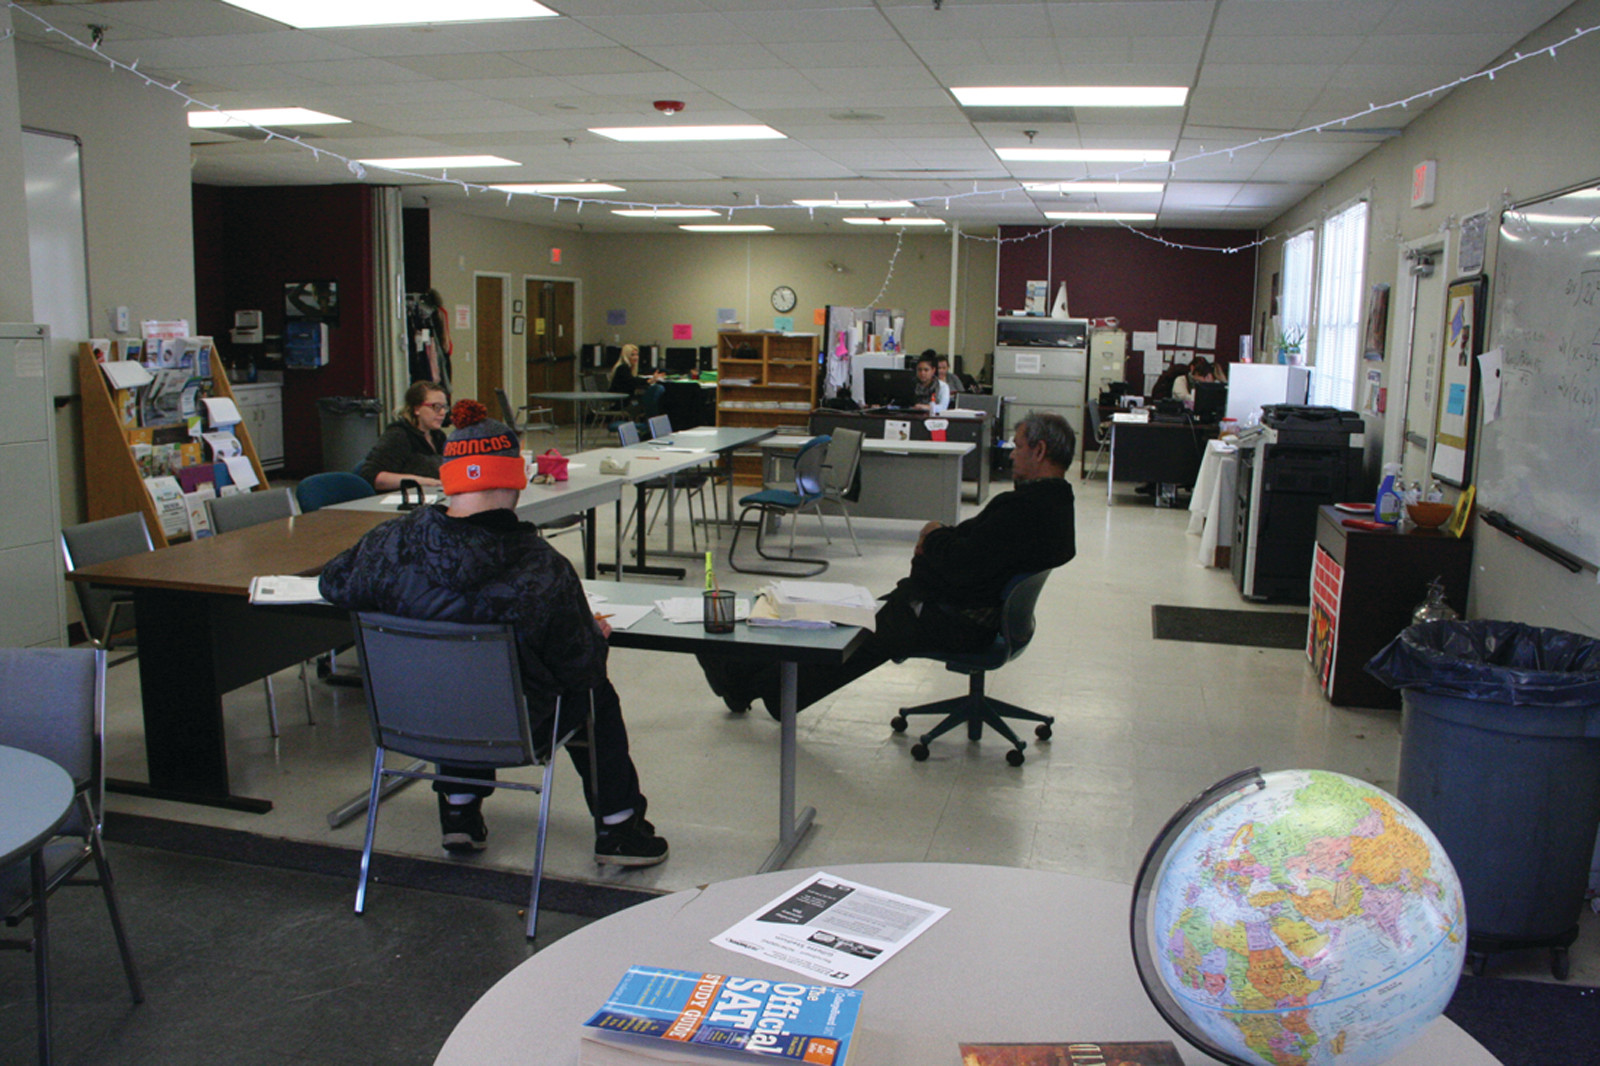 YOUTH PROGRAMS: The Comprehensive Community Action Program operates a variety of youth education and job training programs from the Buttonwoods Center that would need to be relocated.